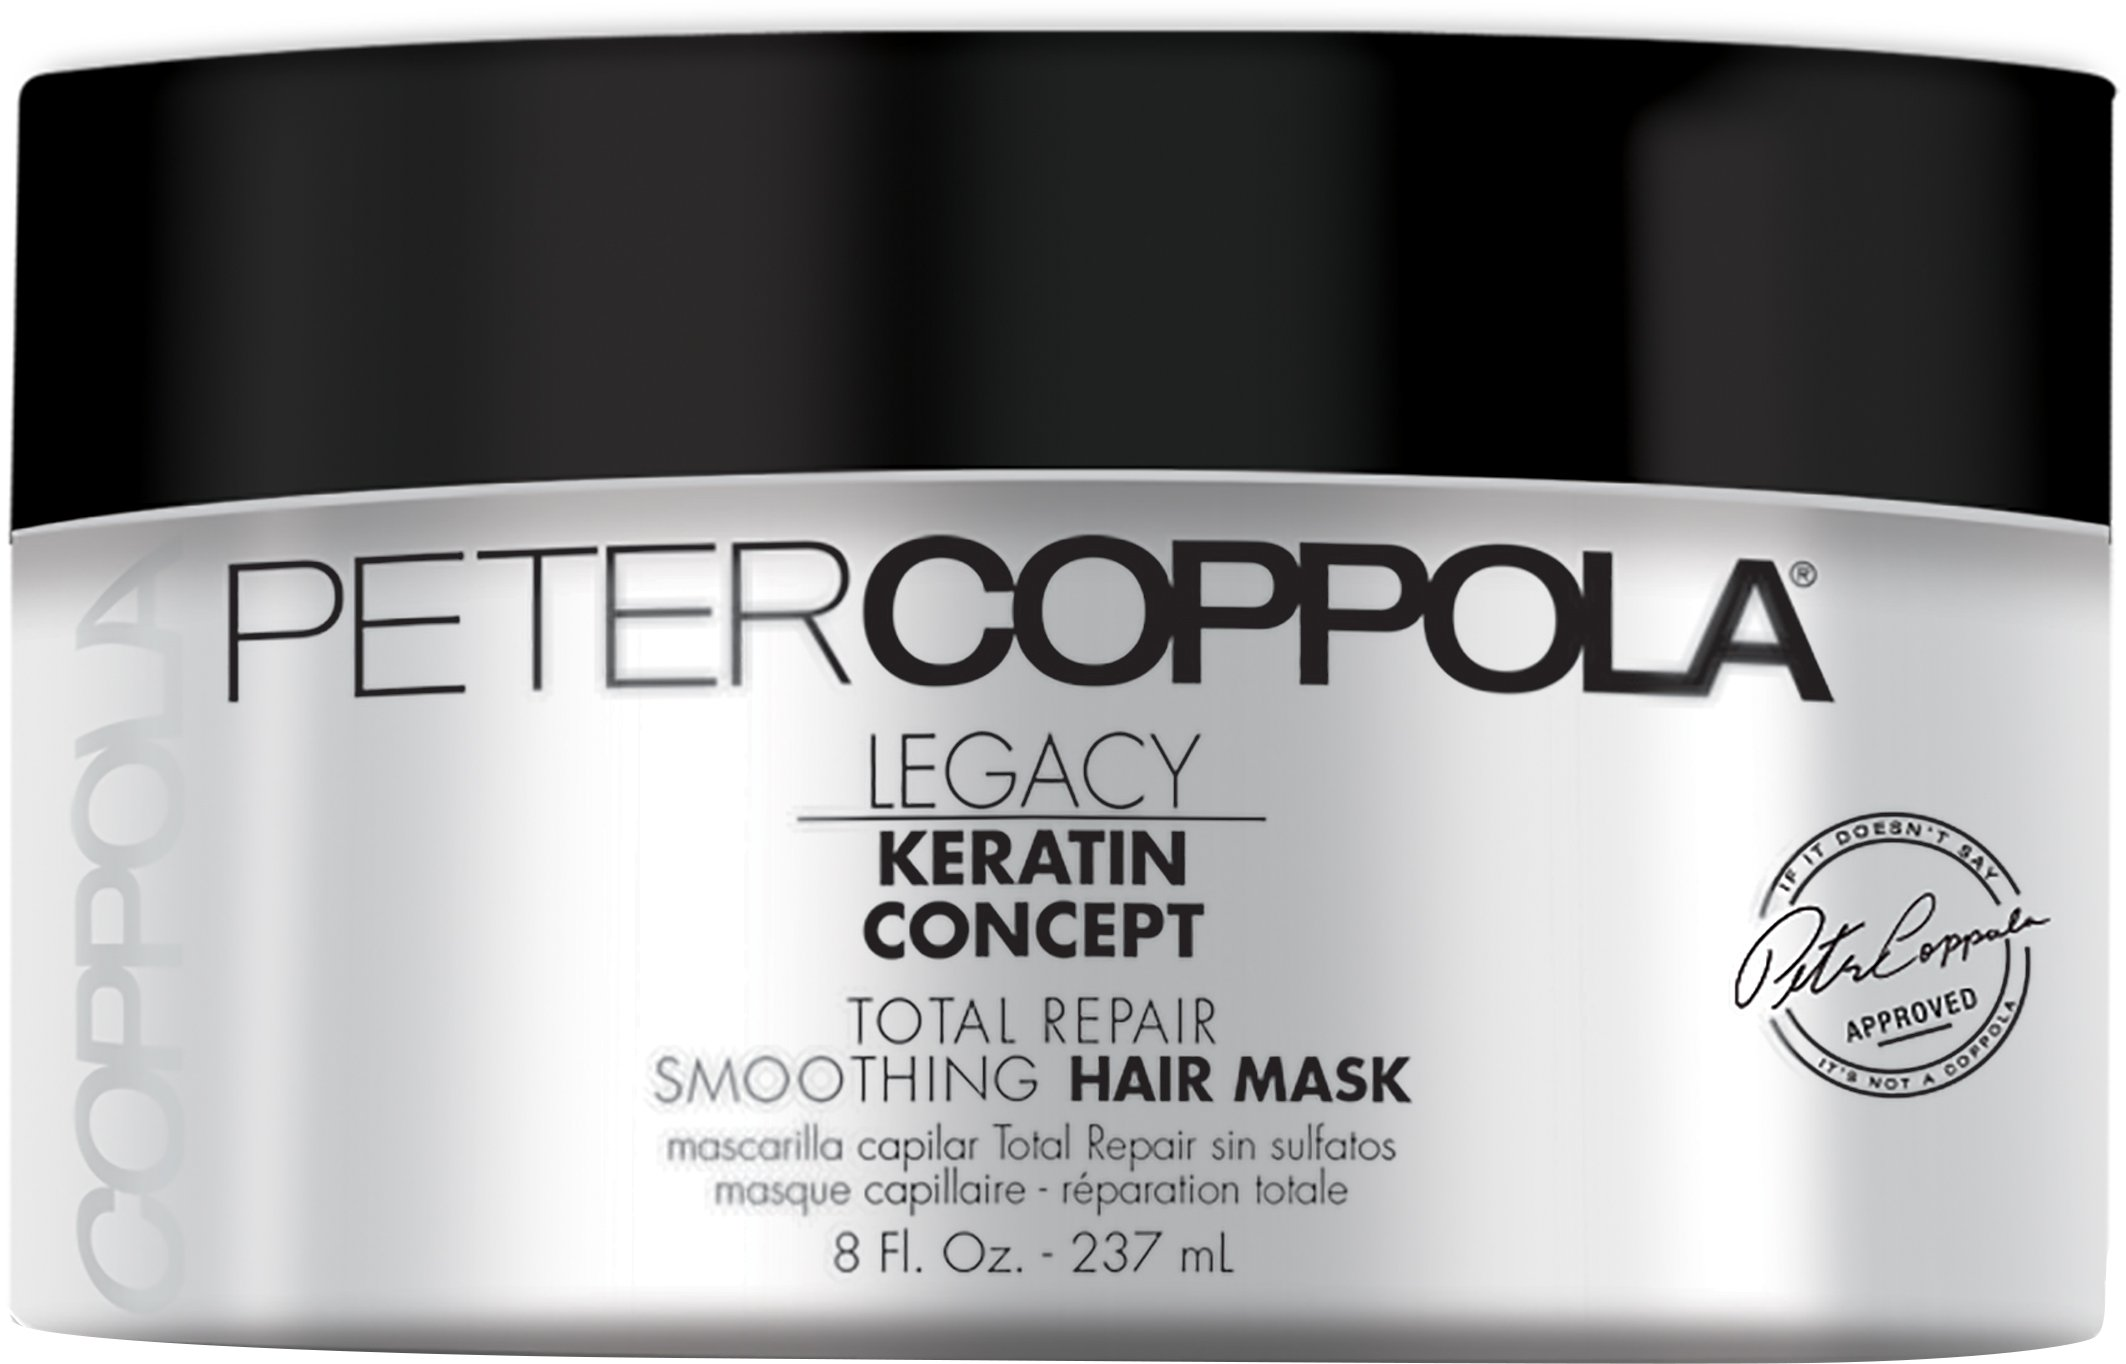 PETER COPPOLA Coppola Keratin Smoothing Treatment Formaldehyde & Aldehyde-Free (Treatment Kit with Aftercare) by Peter Coppola (Image #4)